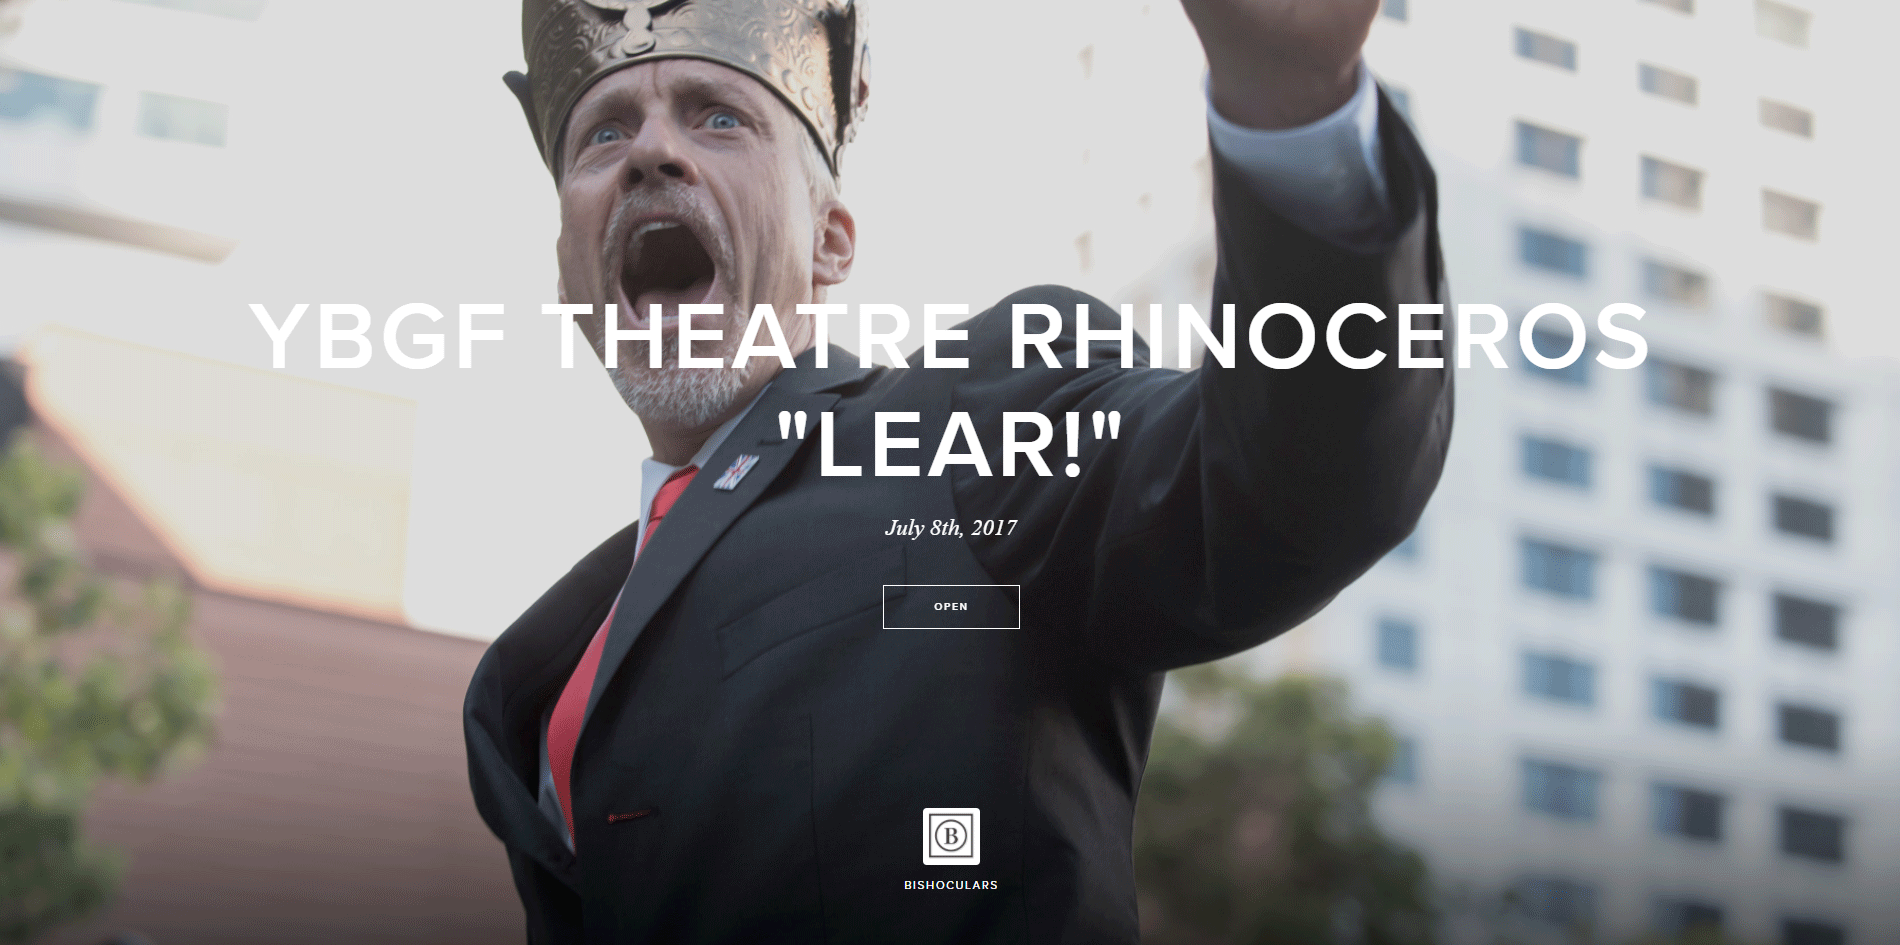 John Fisher in Lear!